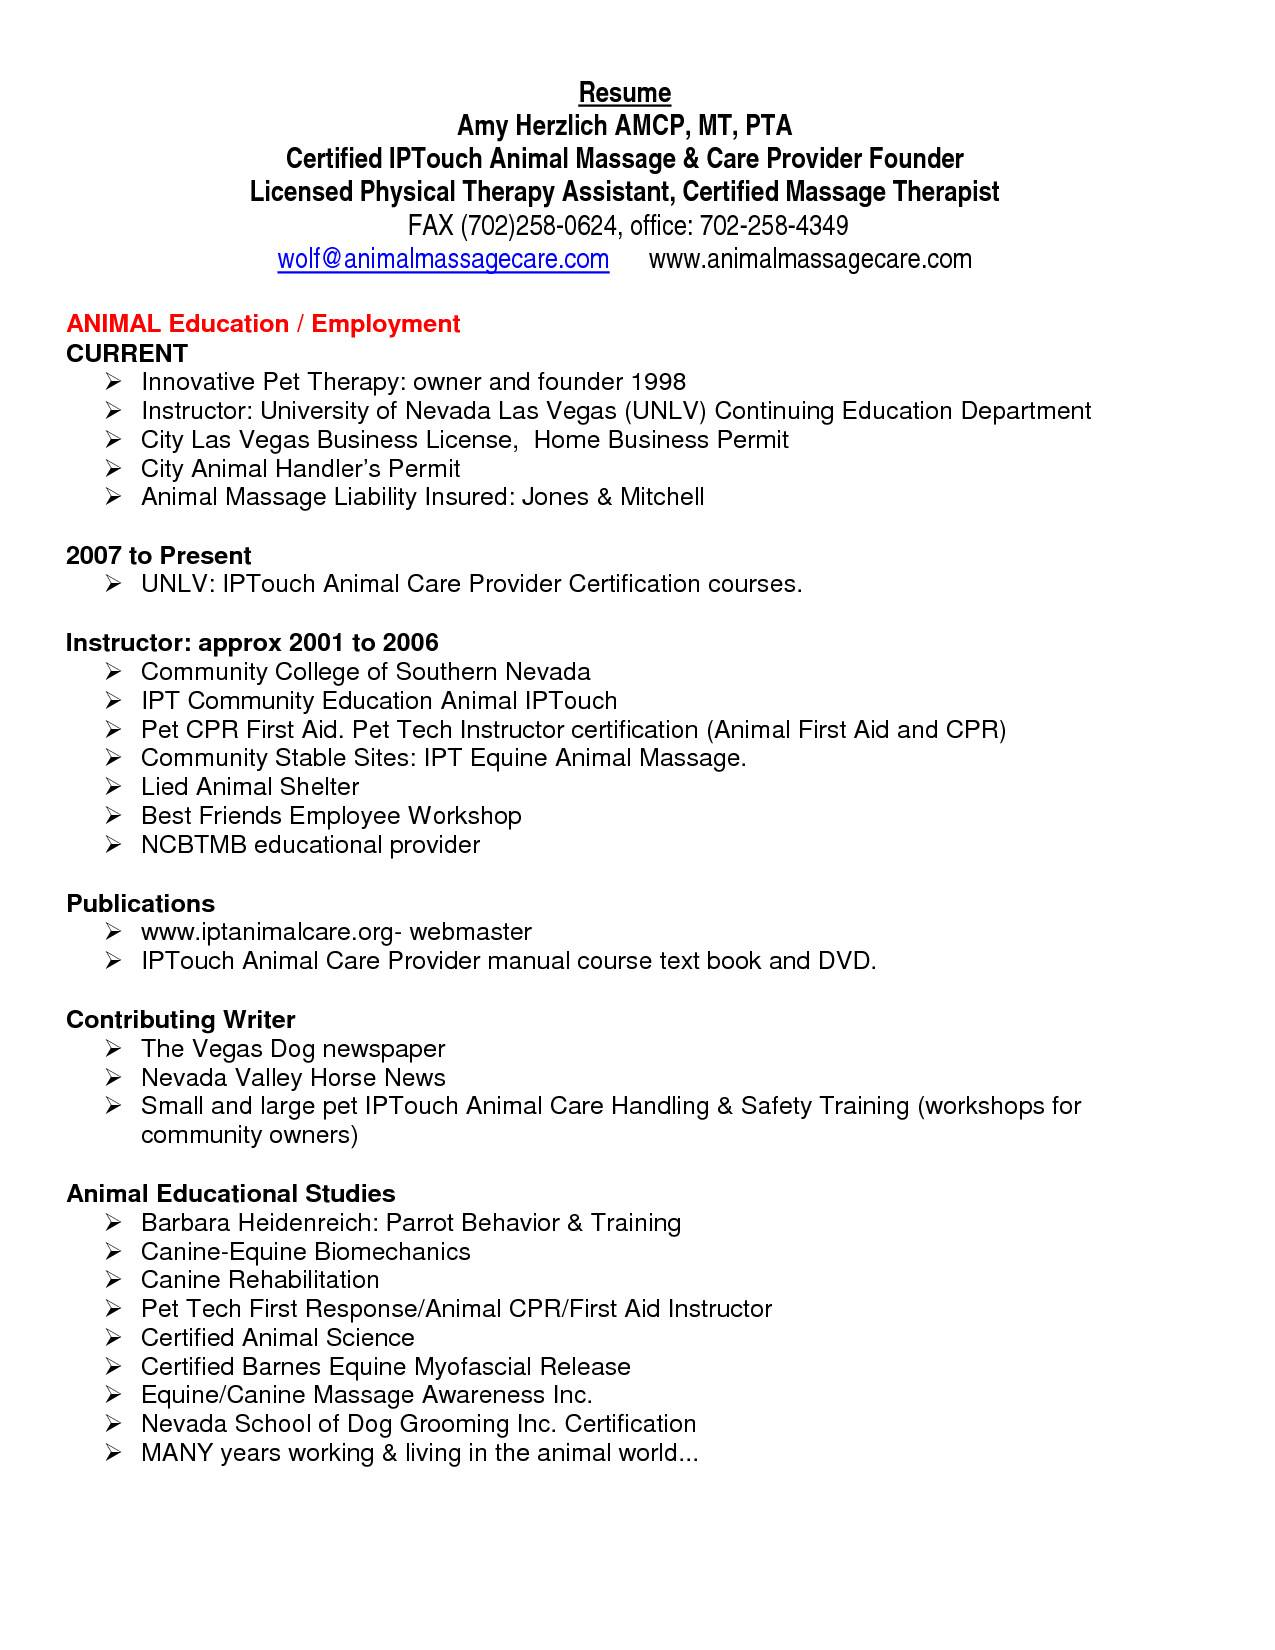 Physical Therapy Curriculum Vitae Template